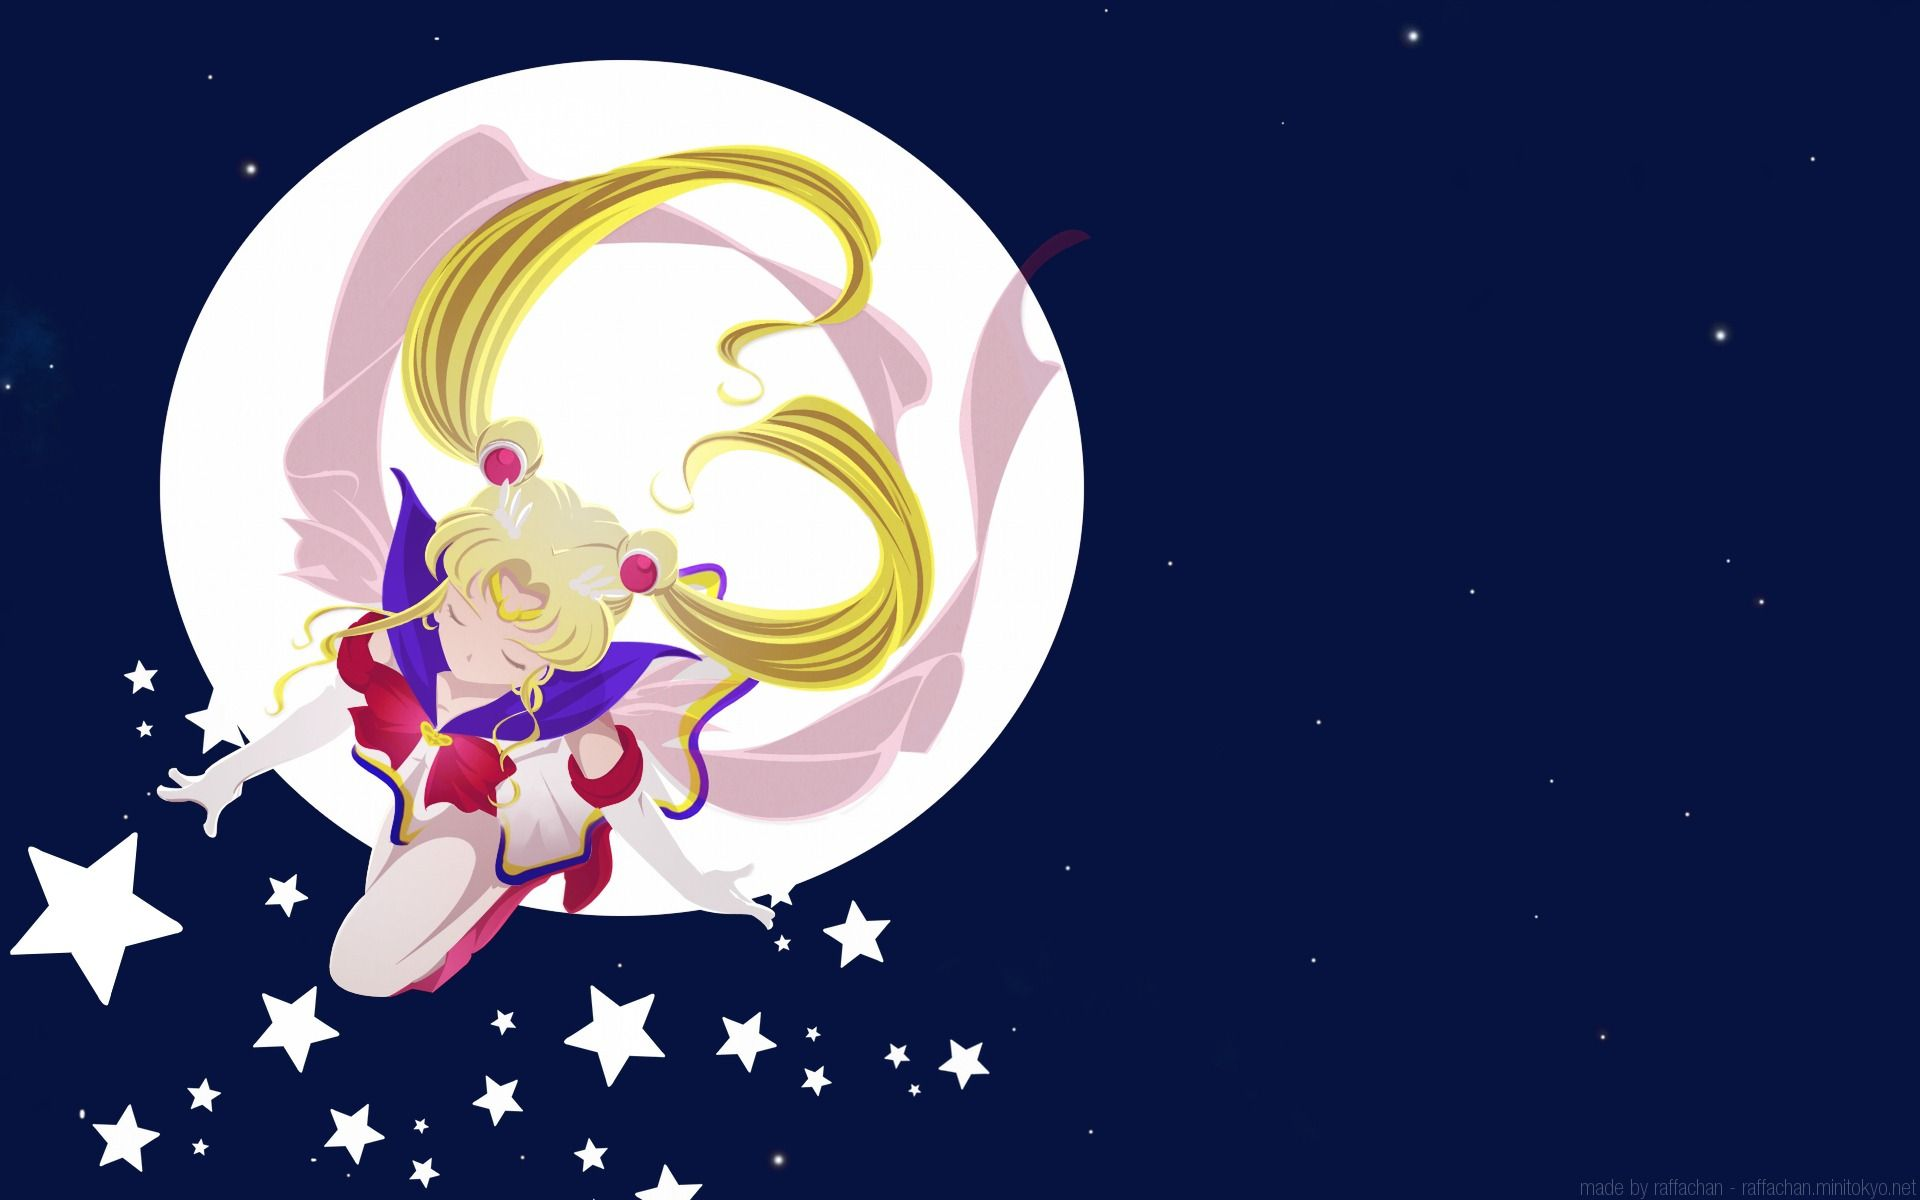 Sailor Moon Wallpaper Sailor Moon Wallpaper Sailor Moon Luna